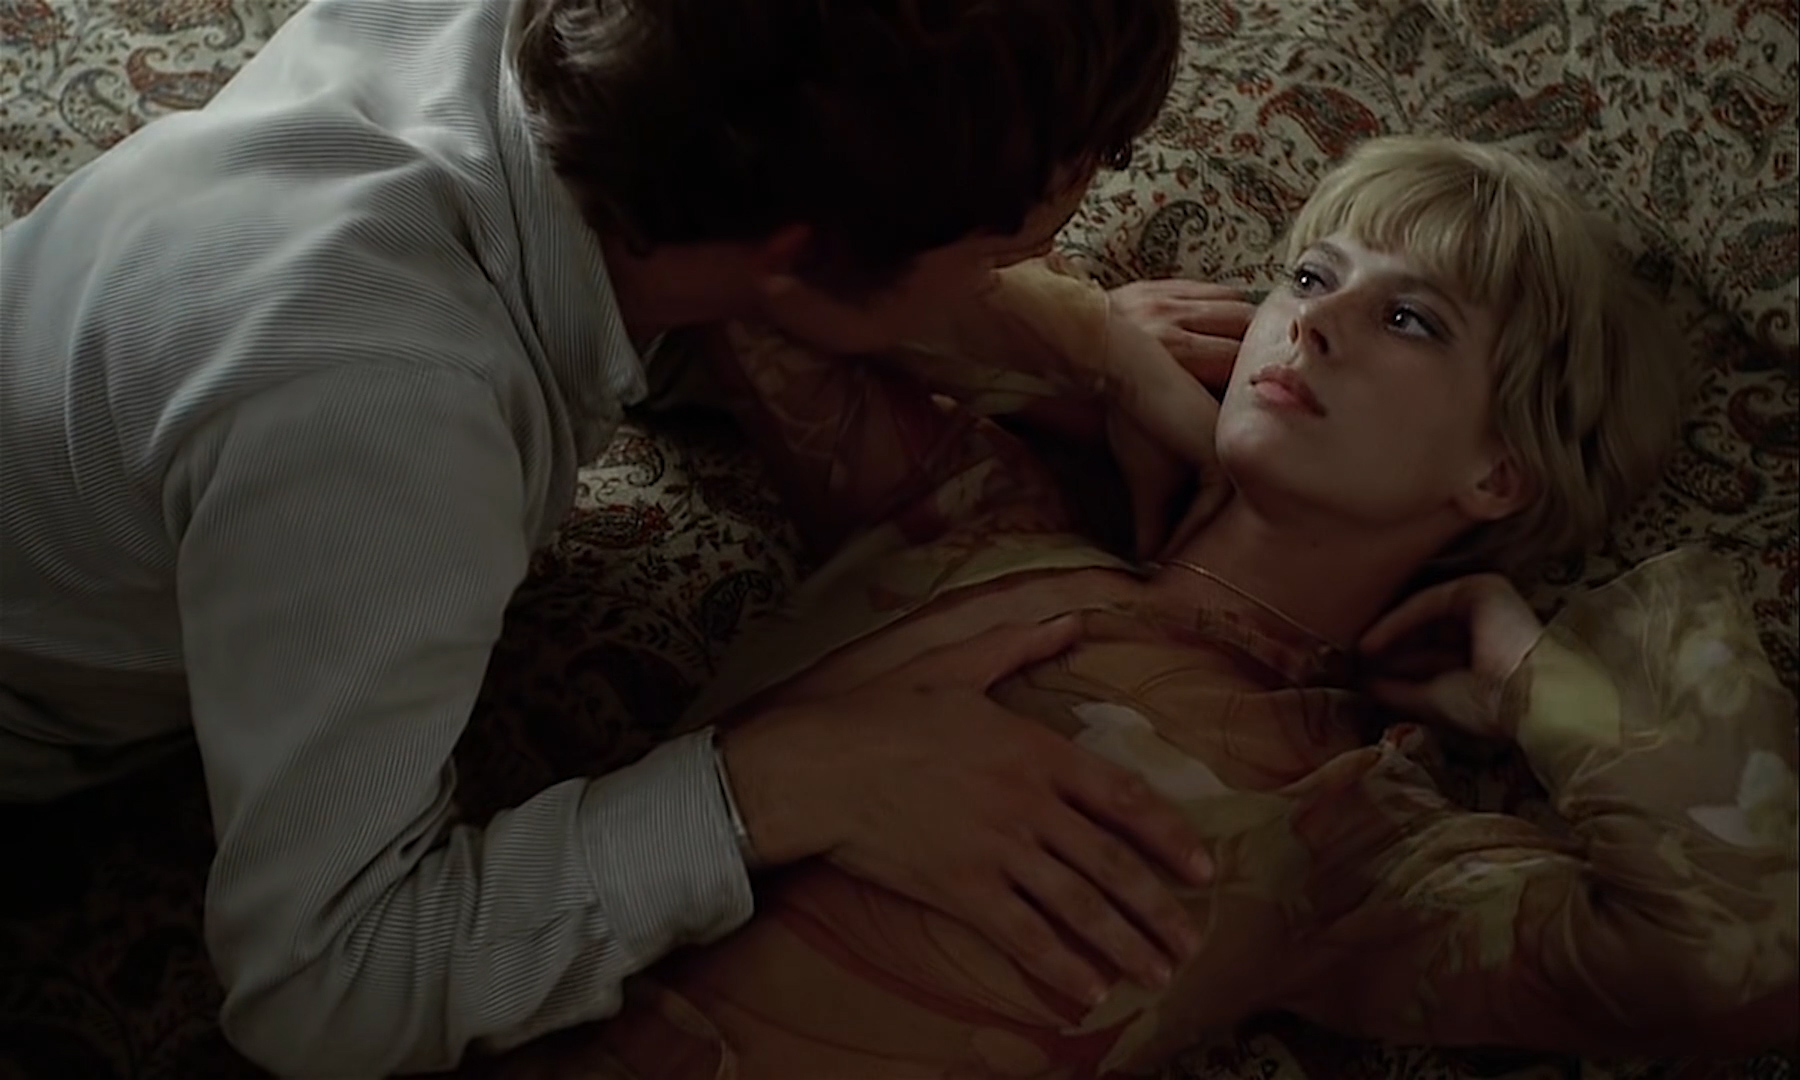 Mimsy Farmer nude topless and sex - More (1969) hd720-1080p (8)